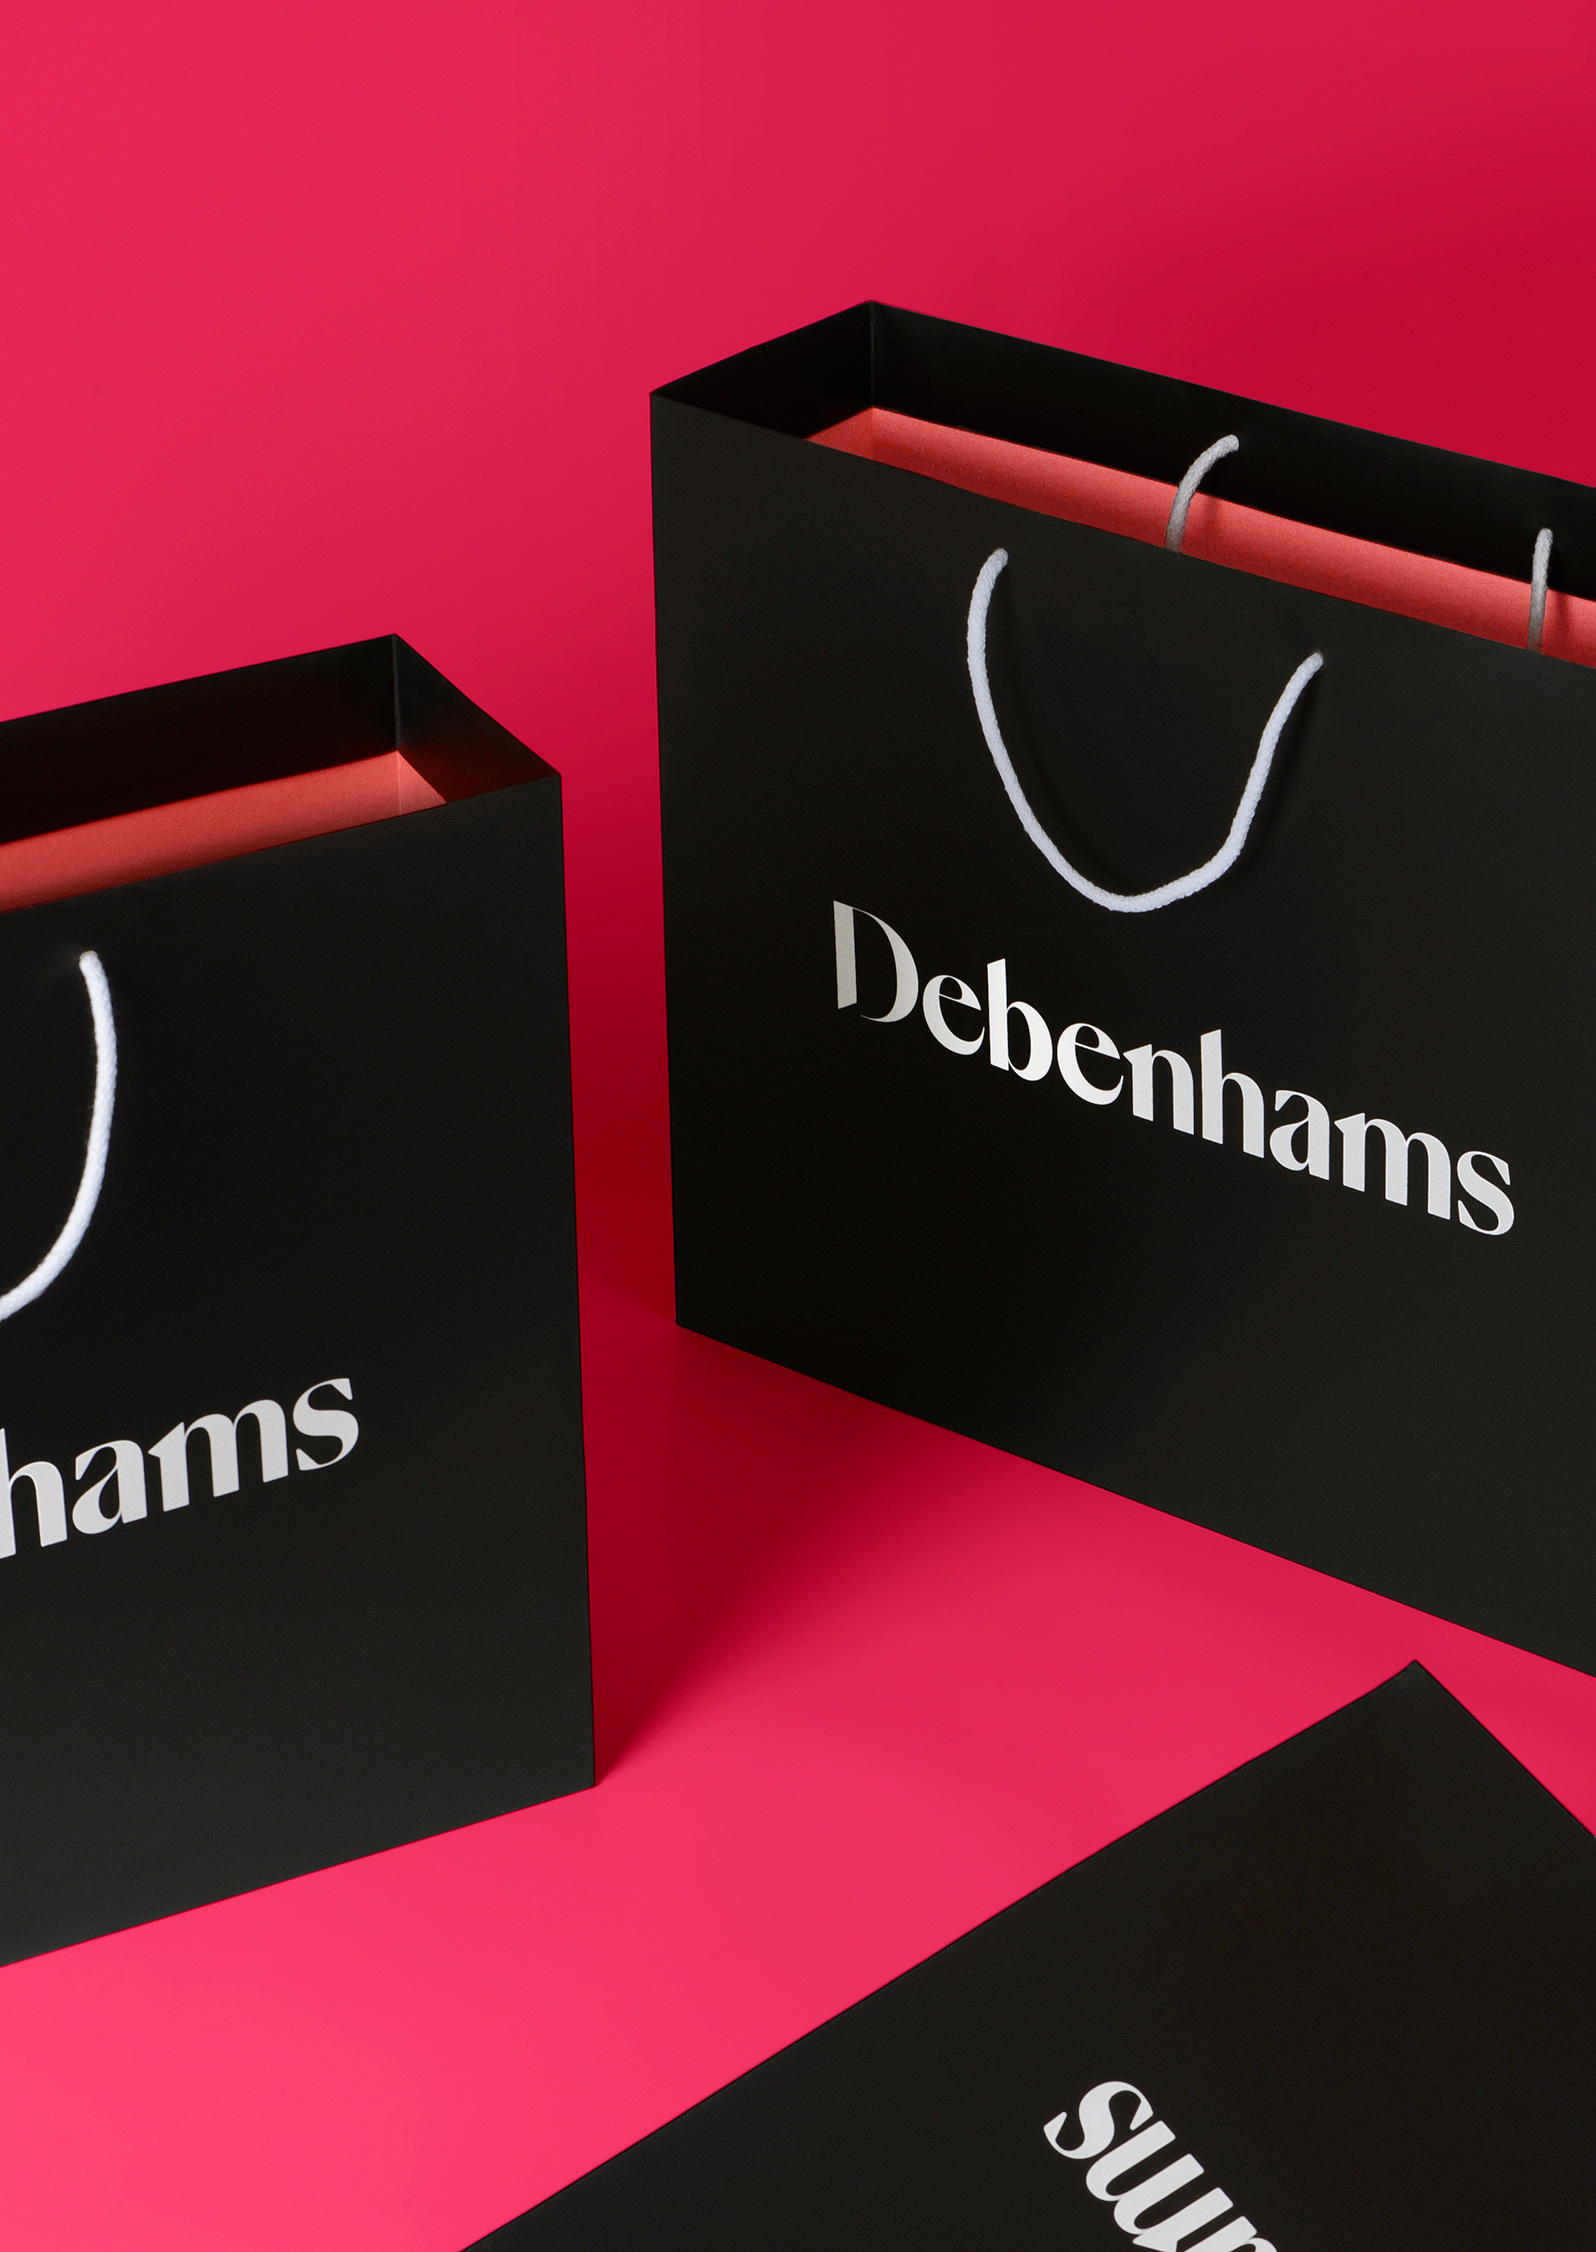 New Logo and Identity for Debenhams by Mother Design